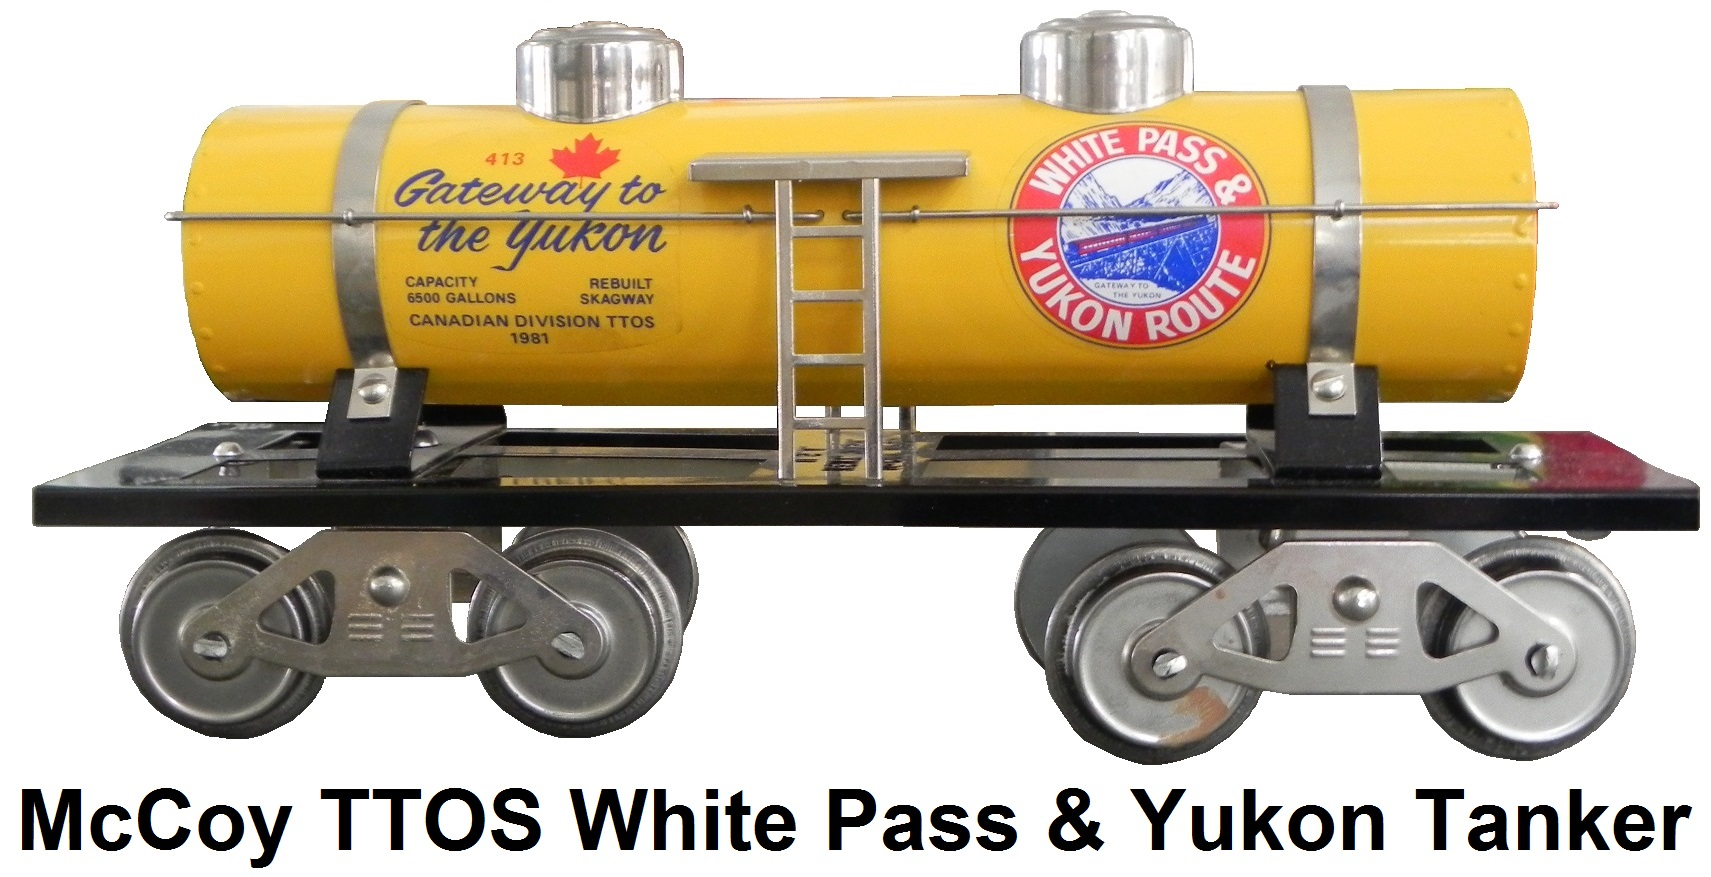 McCoy TTOS Canadian Division White Pass & Yukon Route double dome tanker in yellow, 107 produced